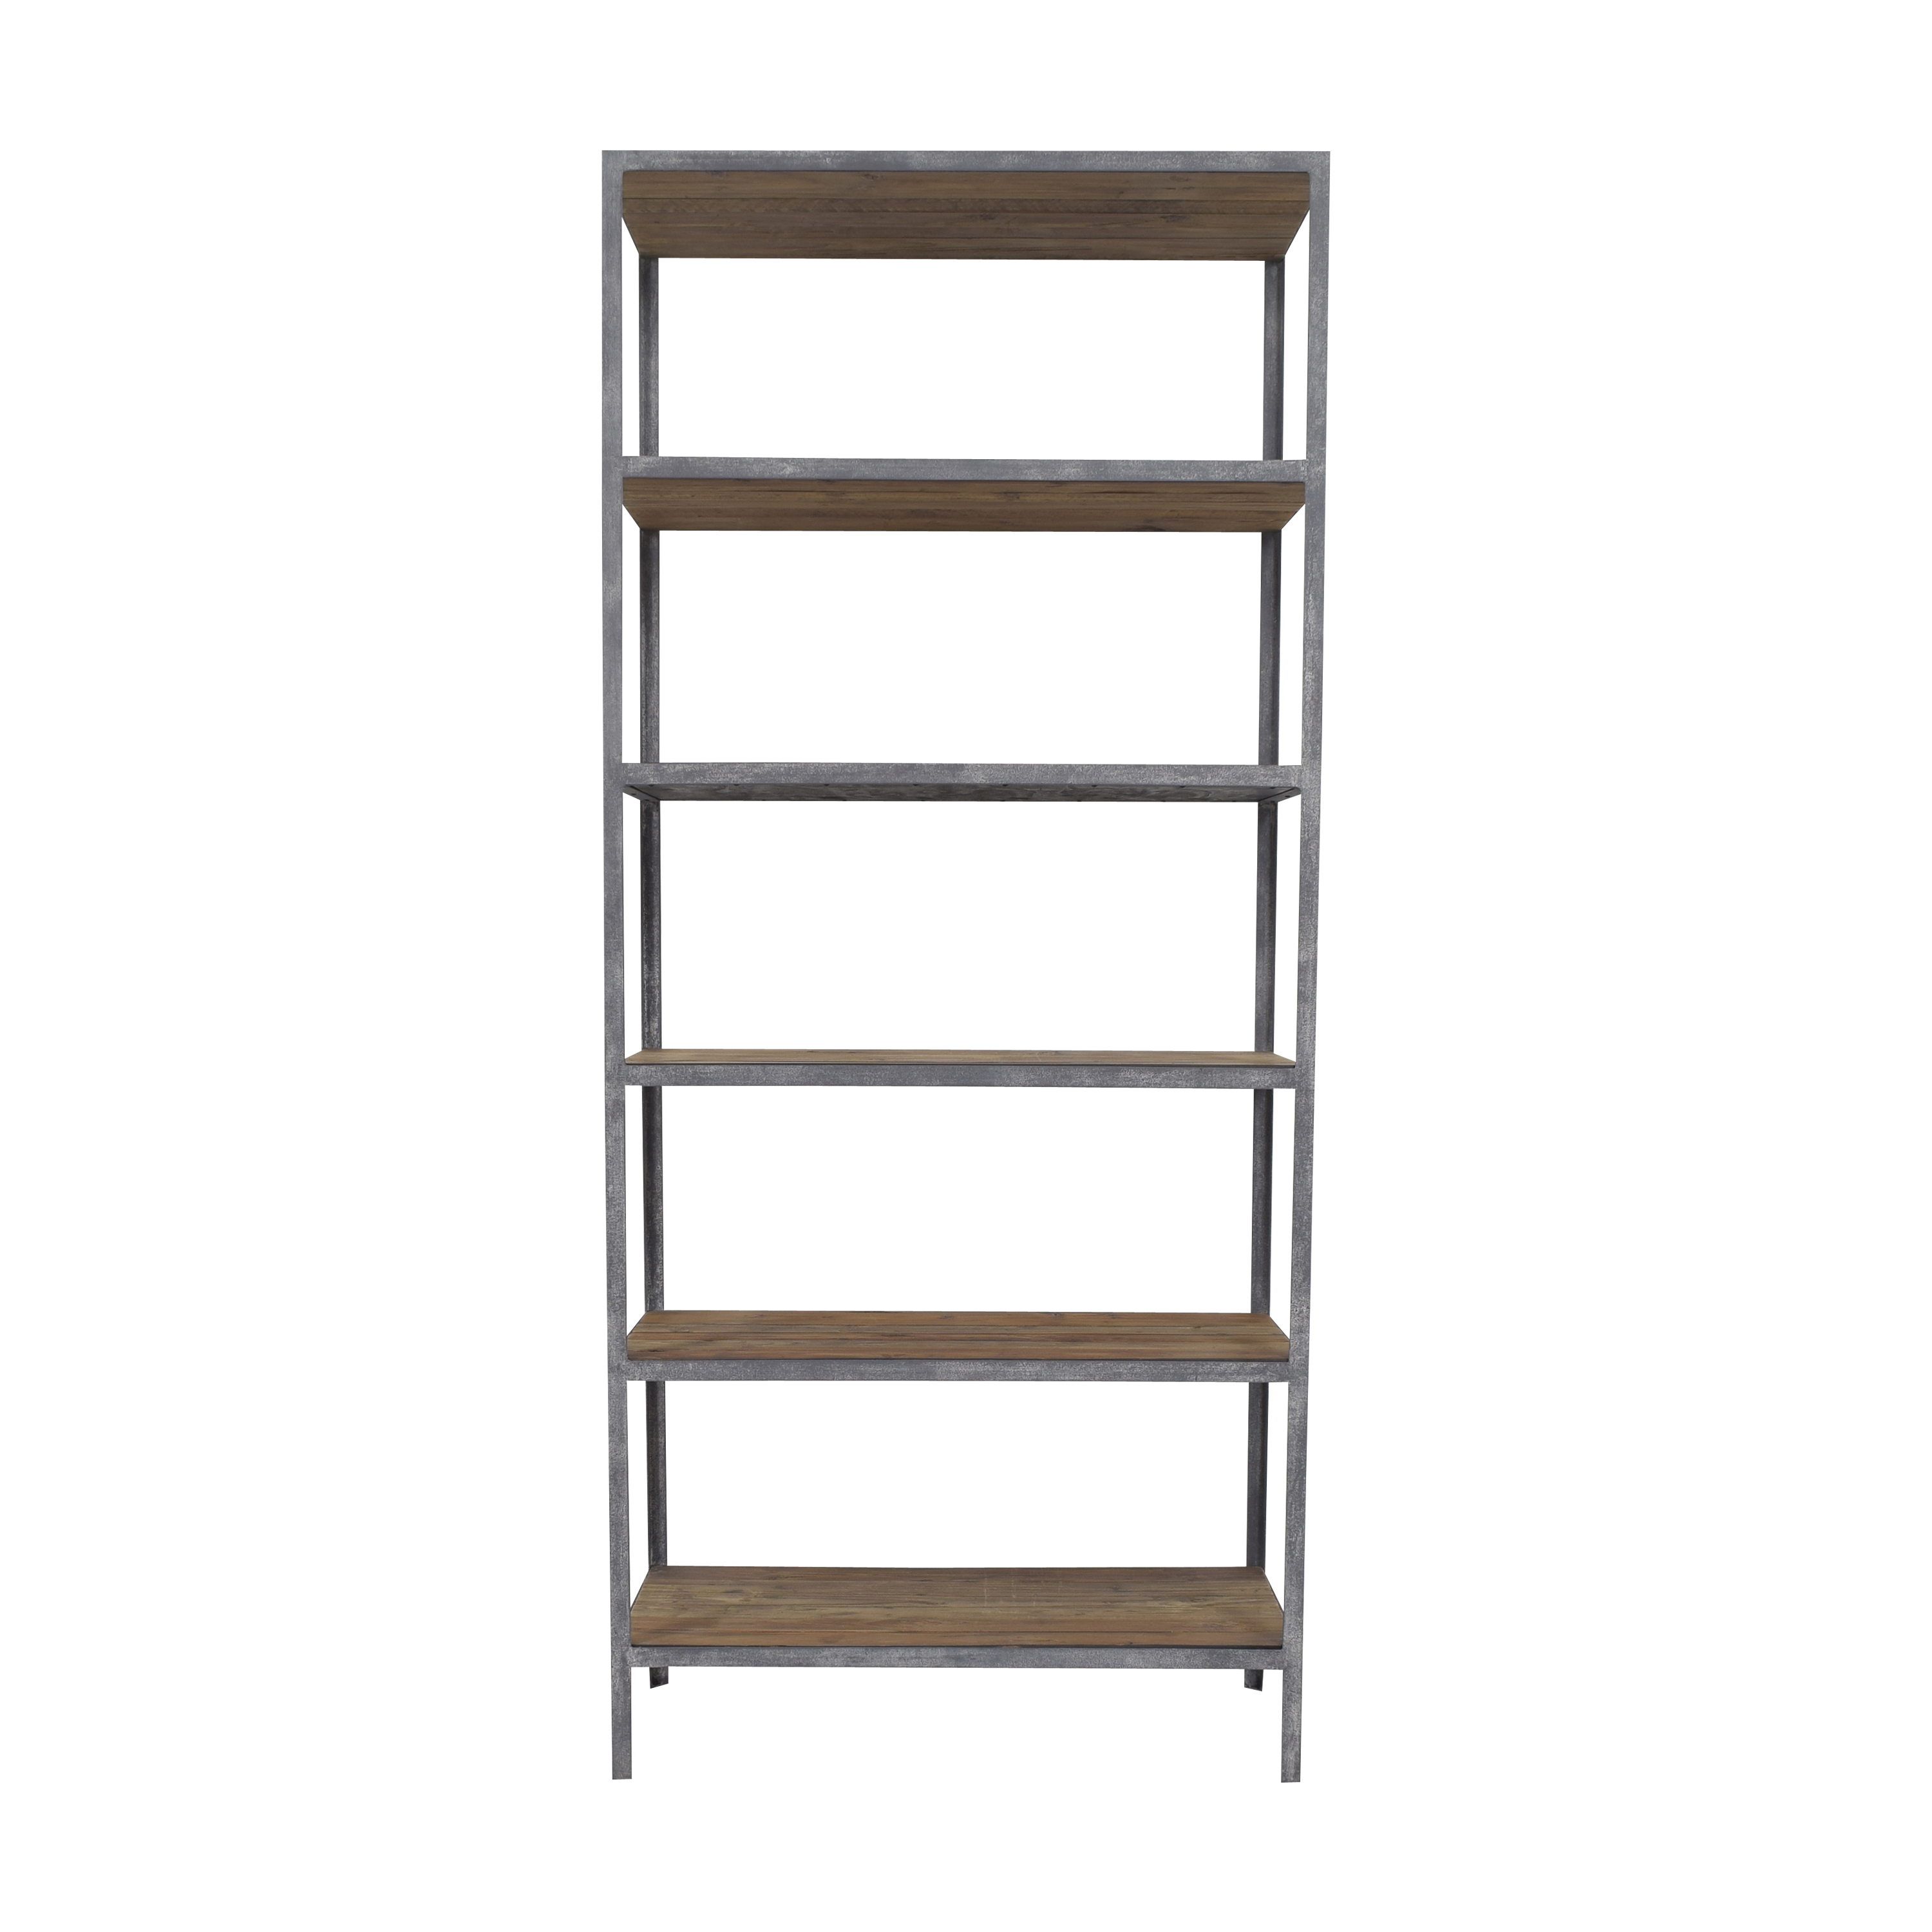 Restoration Hardware Vintage Industrial Single Shelving Restoration Hardware